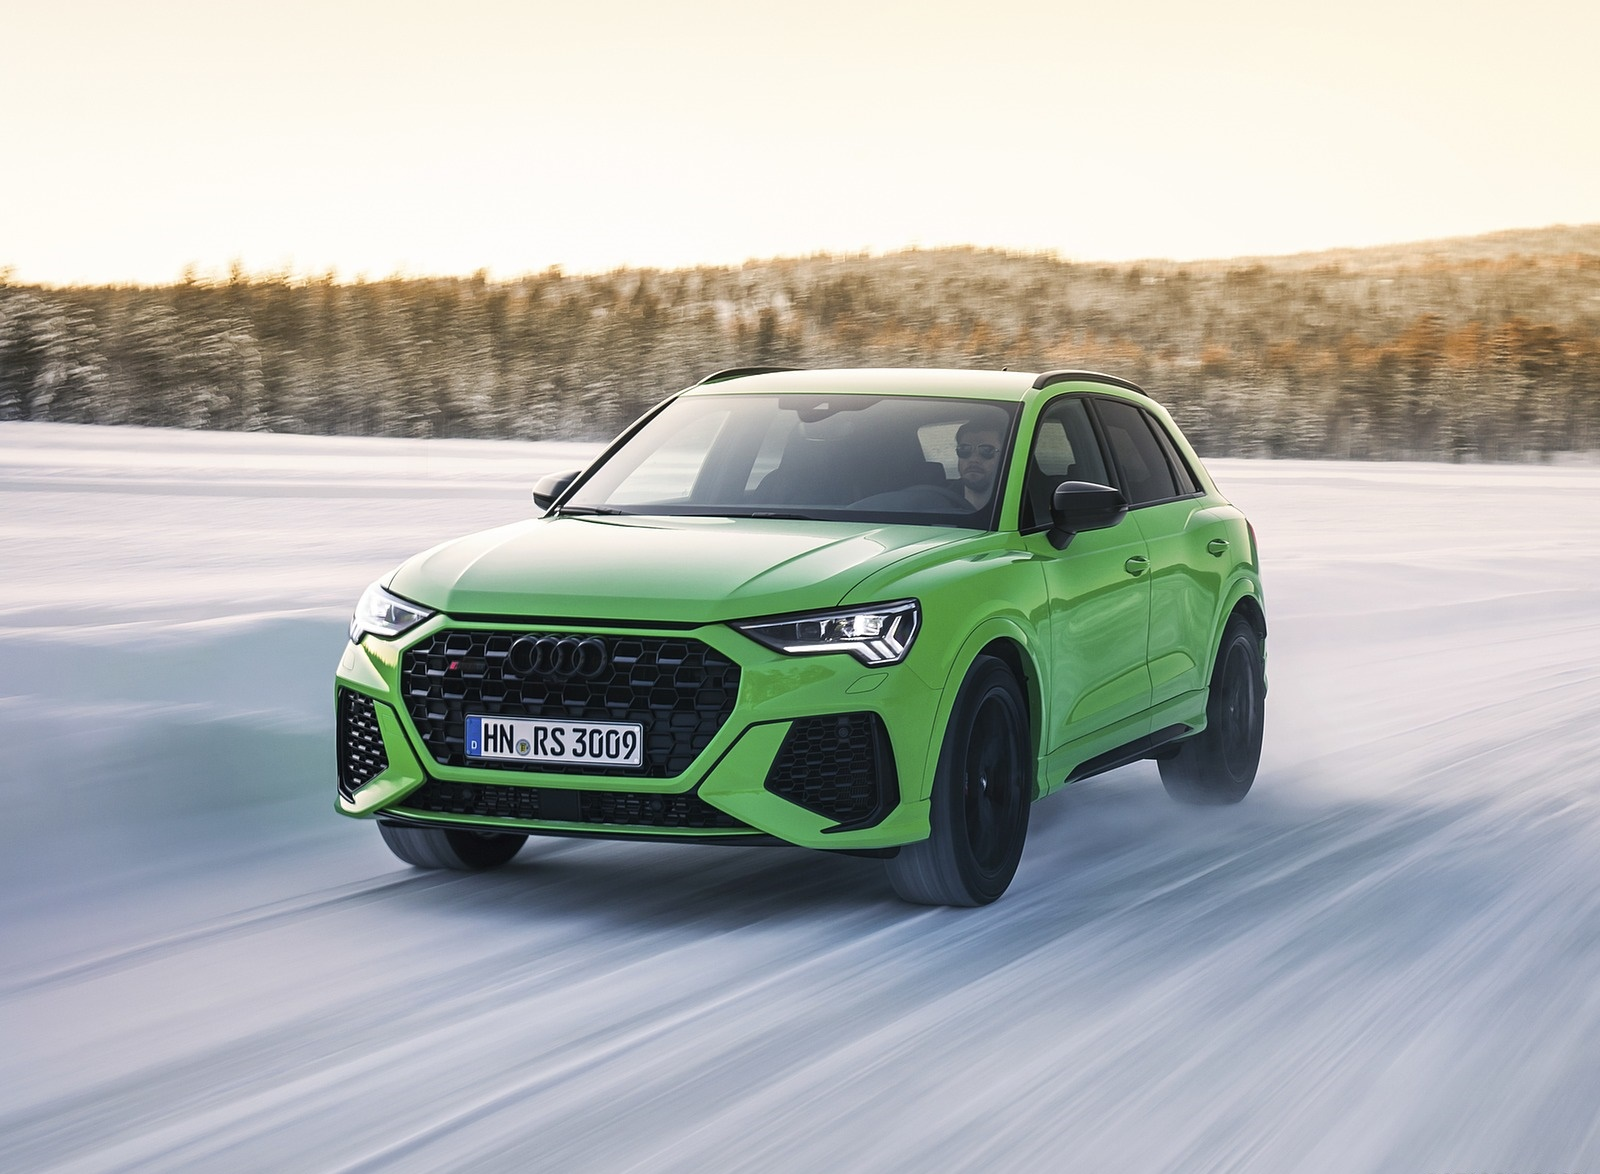 2020 Audi RS Q3 (Color: Kyalami Green) Front Three-Quarter Wallpapers #27 of 116